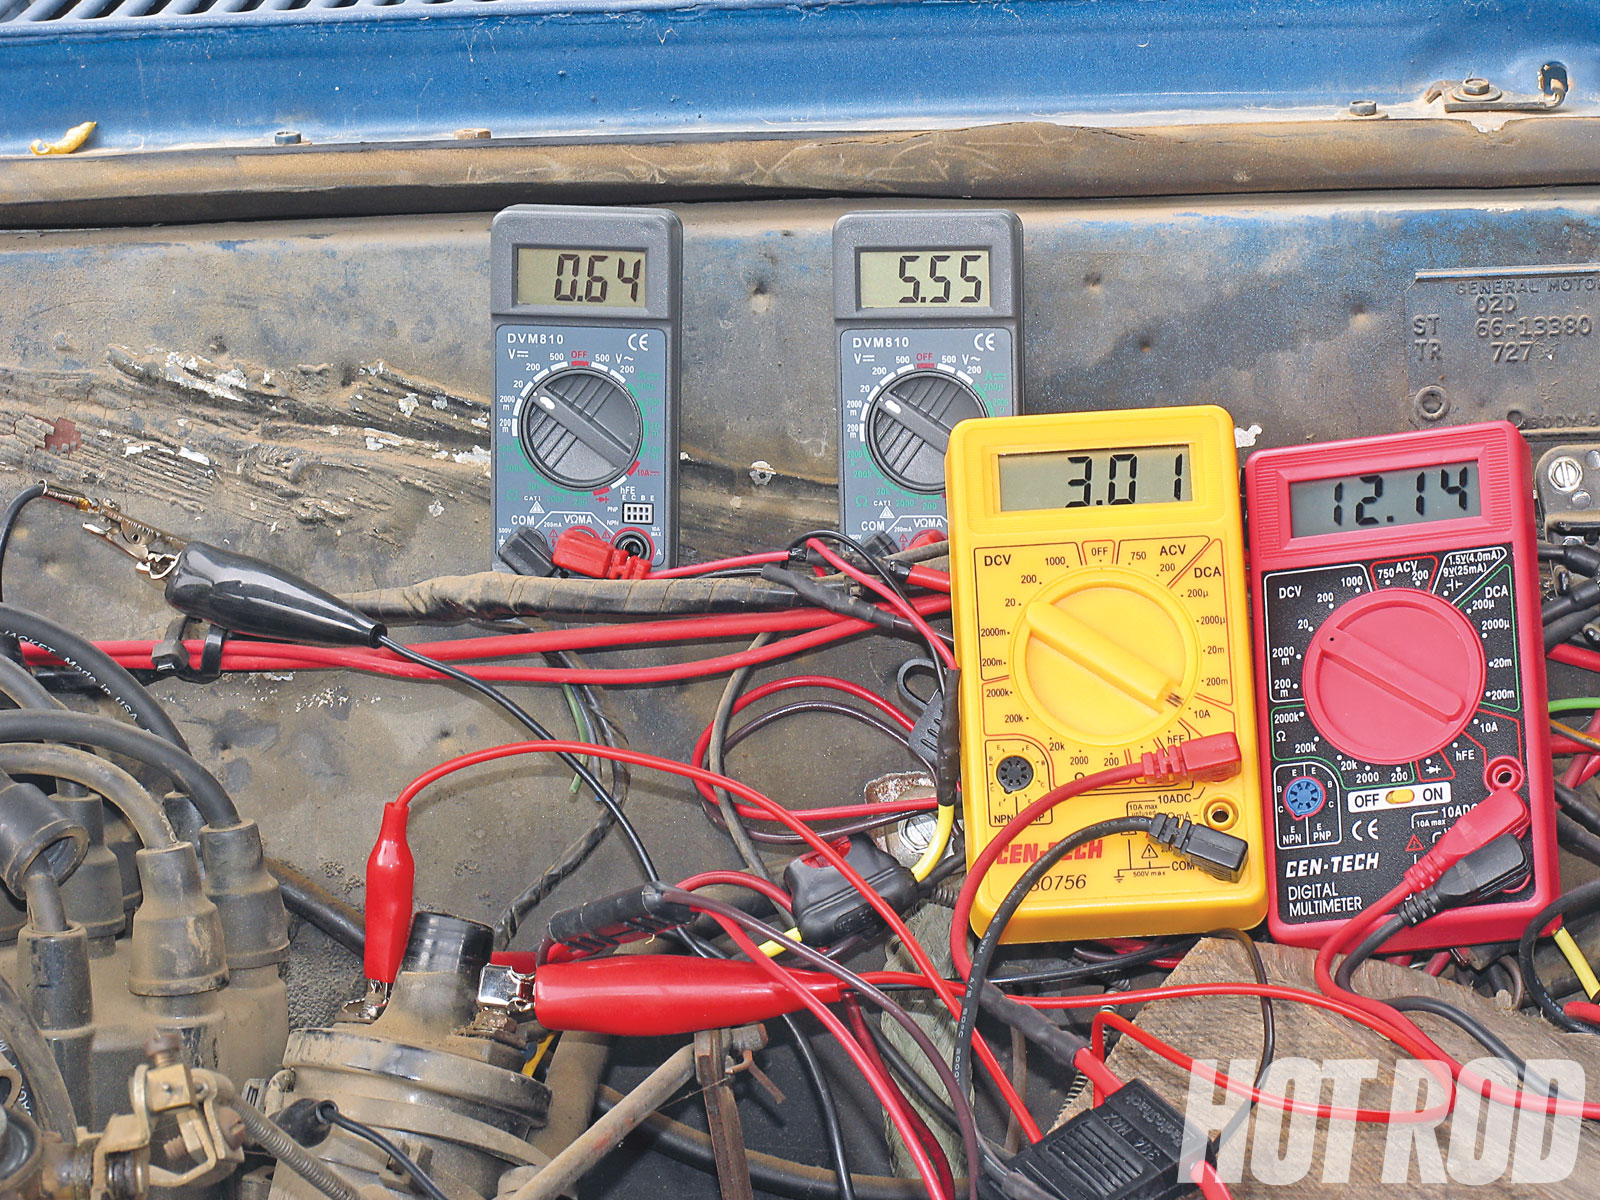 gm muscle car tach voltage requirements hot rod network omc tach wiring gm muscle car tach [ 1600 x 1200 Pixel ]